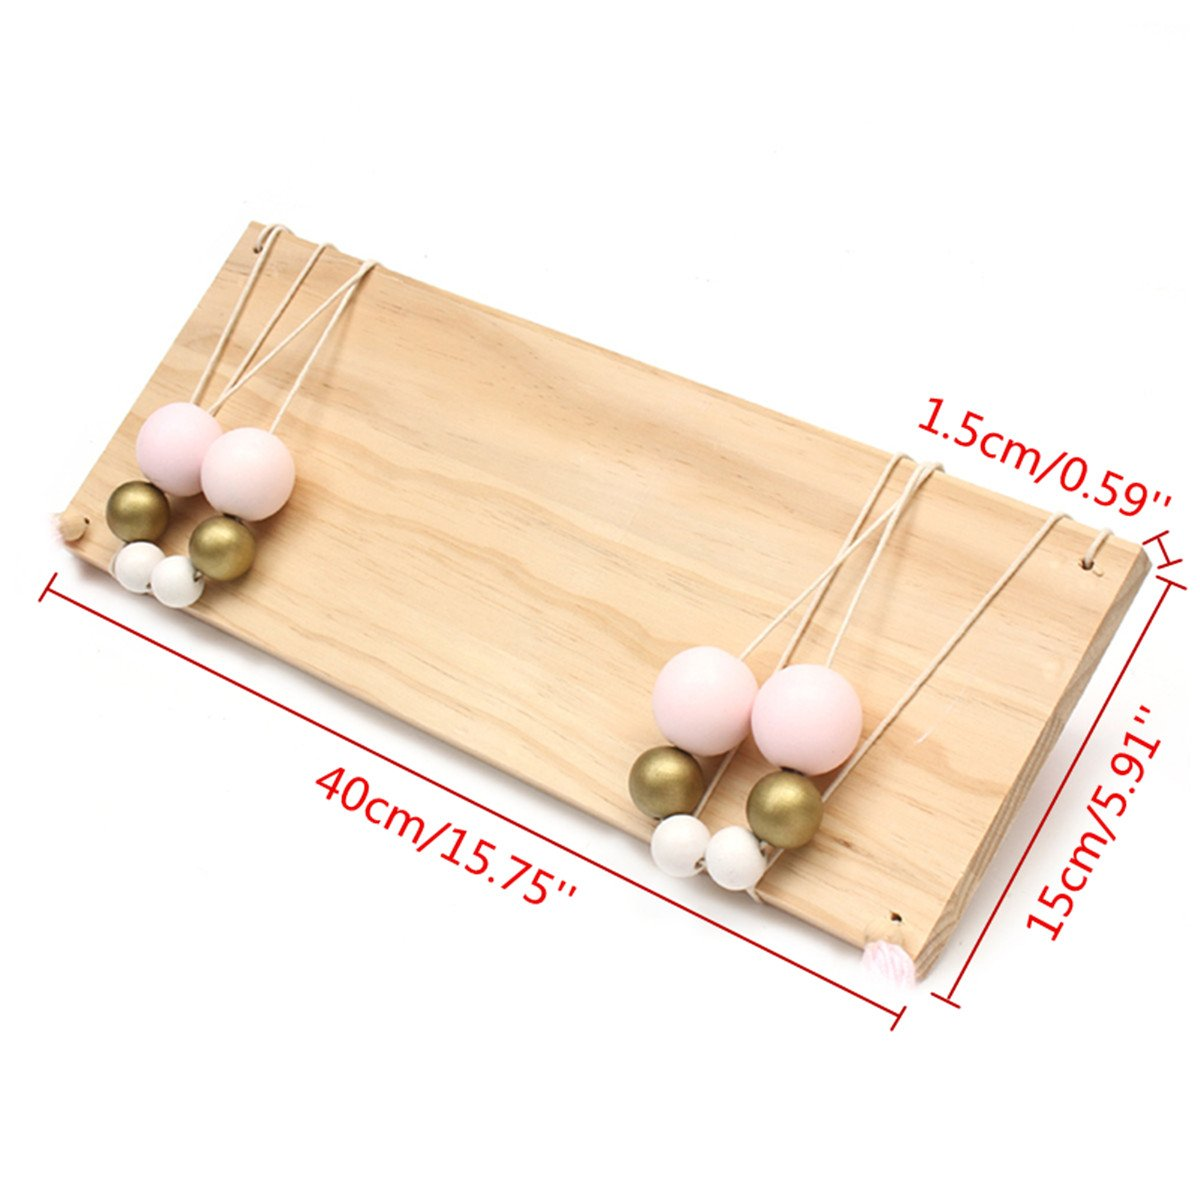 fdc2663d2 Jeteven Wood Wall Hanging Shelf Swing Shelves Wooden Board Shelf with Rope  for Room Wall Decor Gold Pink 40x15x1.5cm  Amazon.co.uk  Kitchen   Home